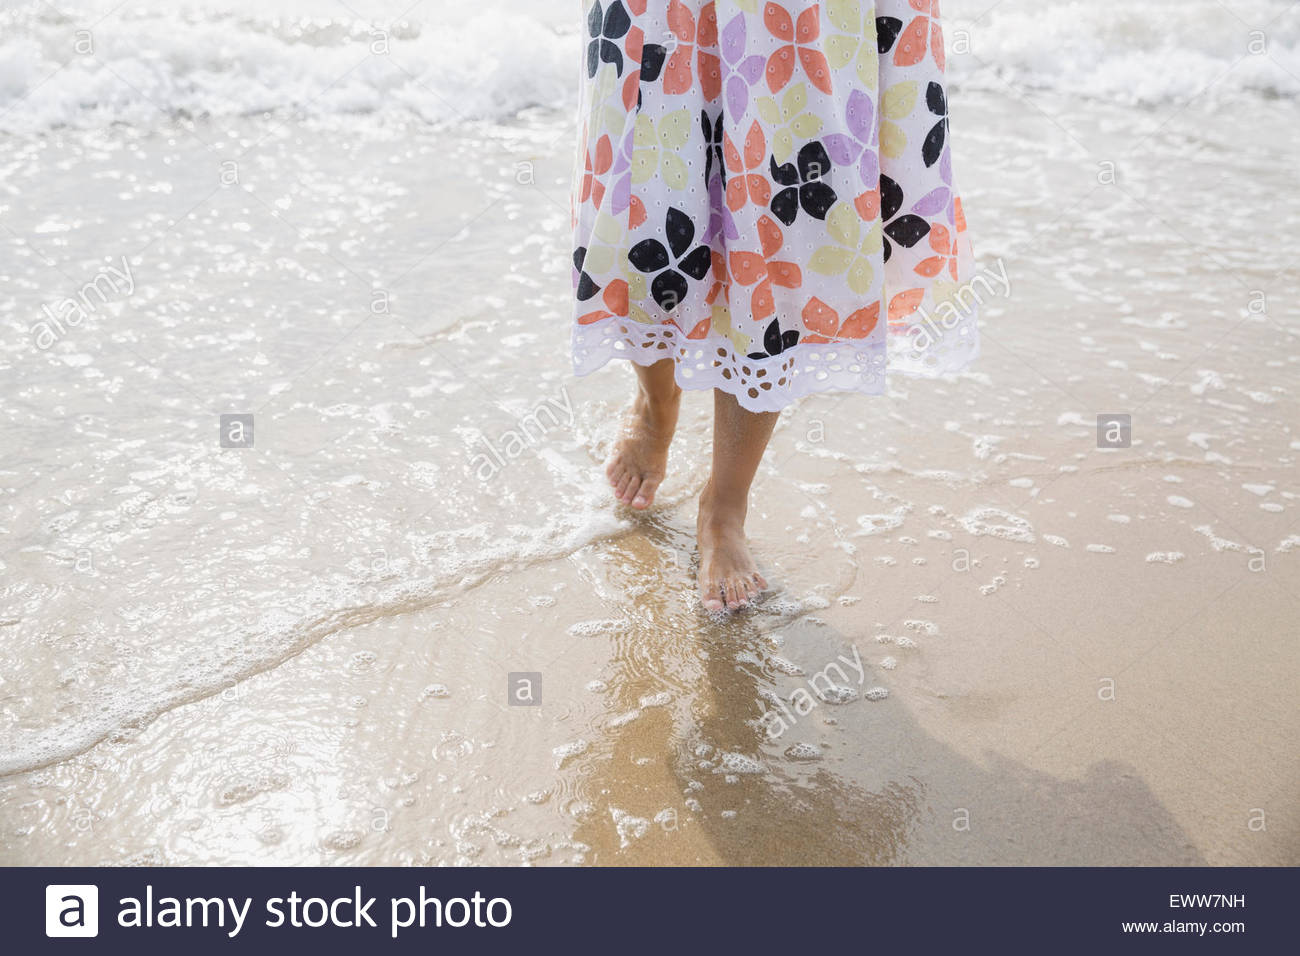 Low section girl sun dress wading ocean surf - Stock Image